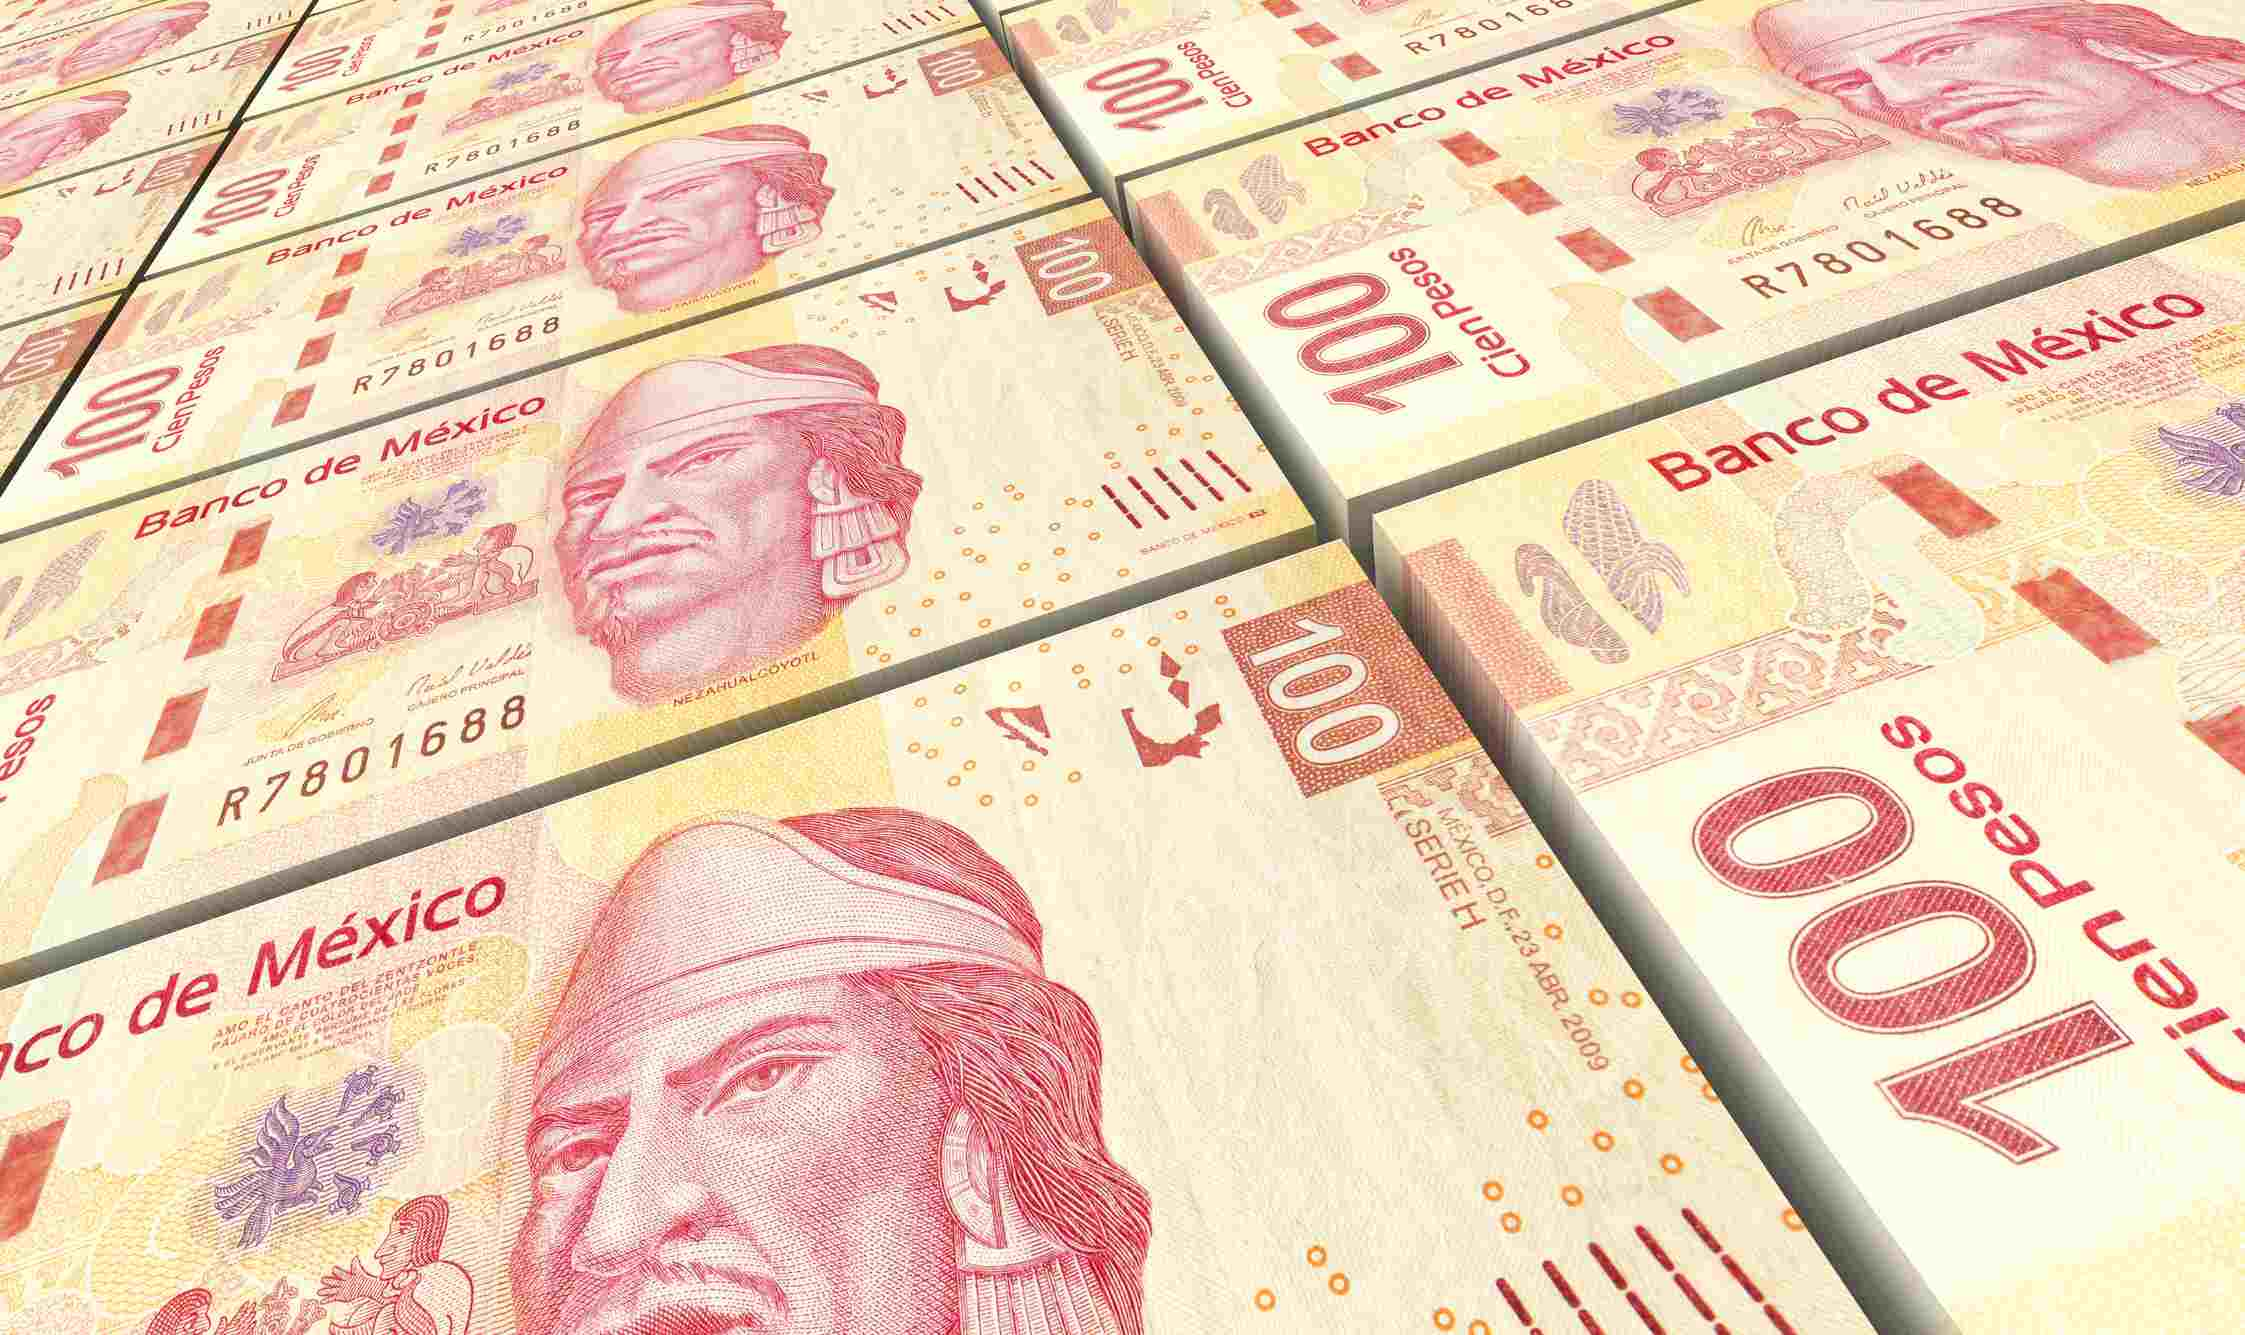 Mexican one hundred pesos note